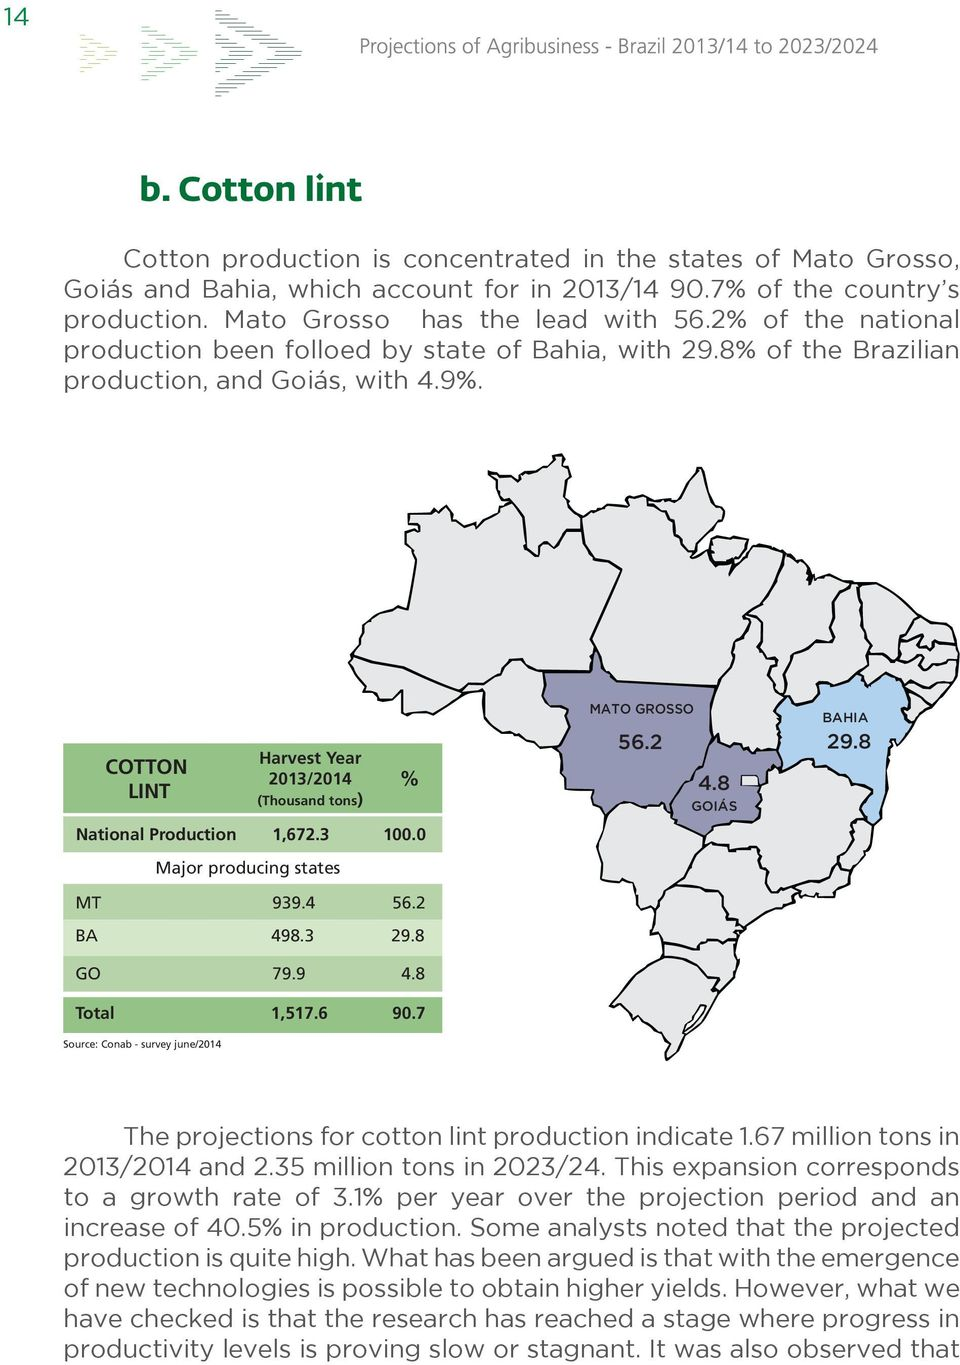 COTTON LINT National Production Harvest Year 2013/2014 (Thousand tons) Major producing states % 1,672.3 100.0 MATO GROSSO 56.2 4.8 GOIÁS BAHIA 29.8 MT BA 939.4 56.2 498.3 29.8 GO 79.9 4.8 Total 1,517.